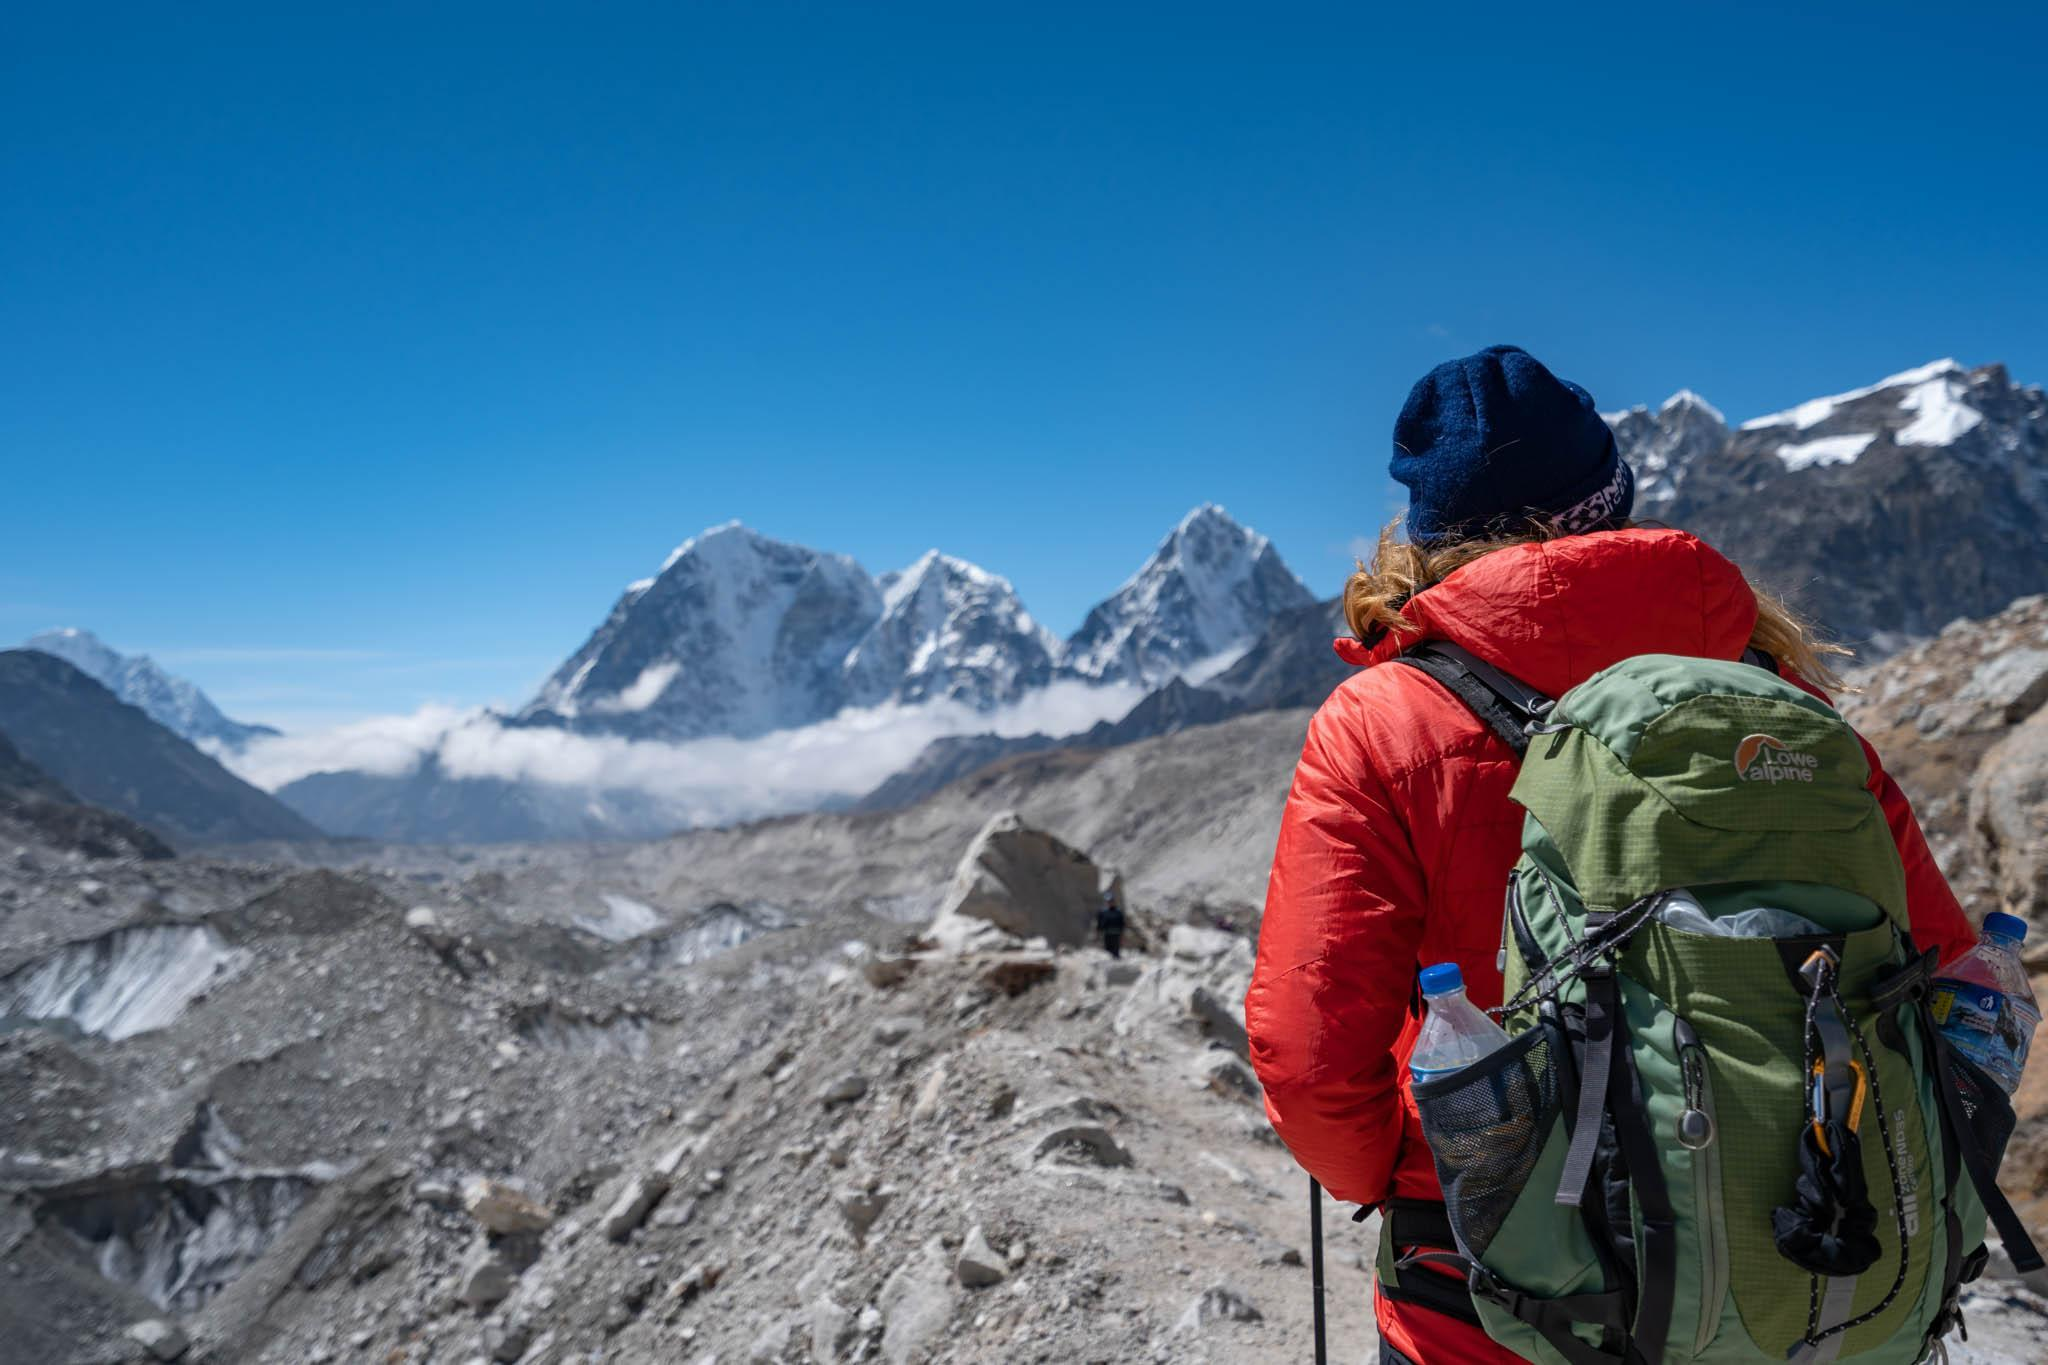 A women in a red jacket on the Everest Base Camp trek